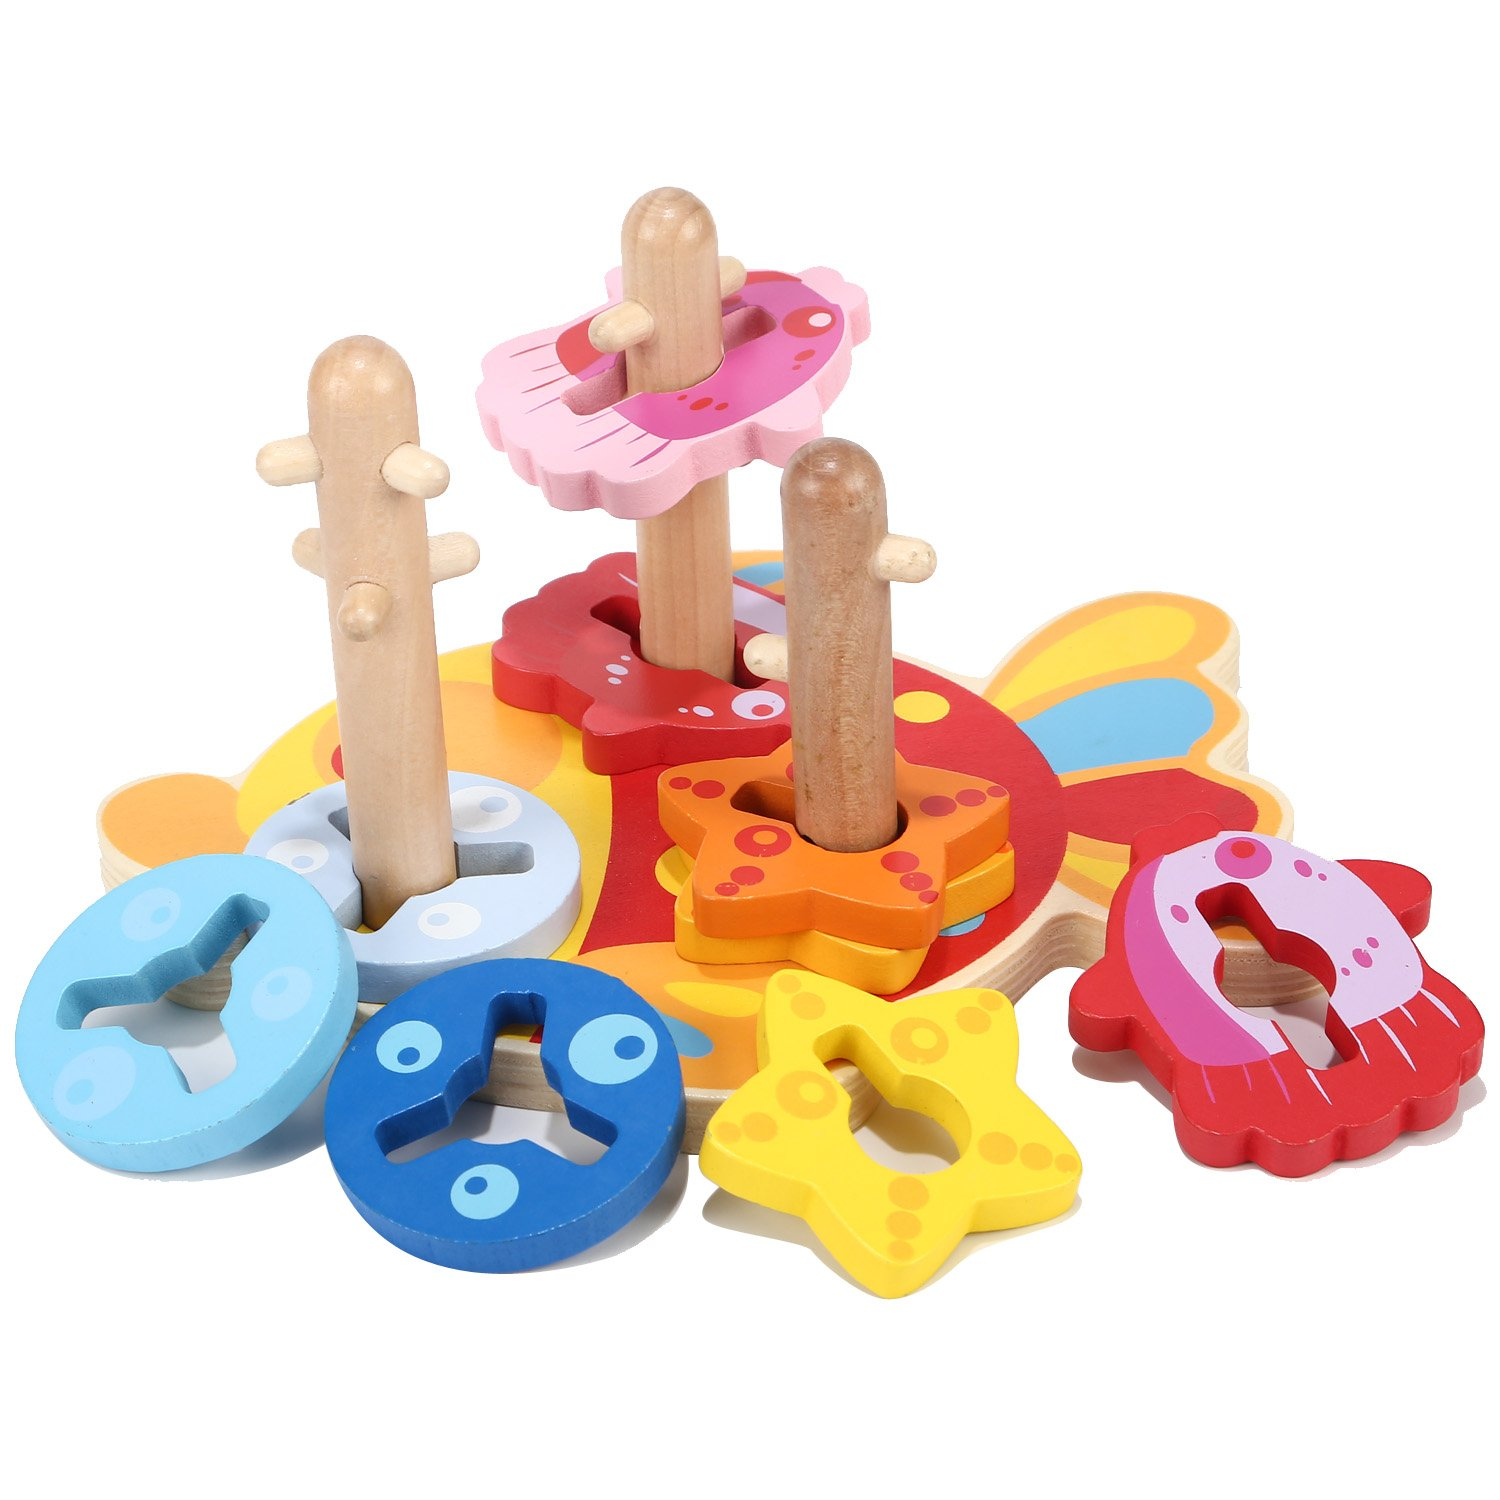 Joqutoys Wooden Sorting and Stacking Blocks Intelligence Fish Board Shape with Color Recognition Puzzle Games Educational Toy for Kids